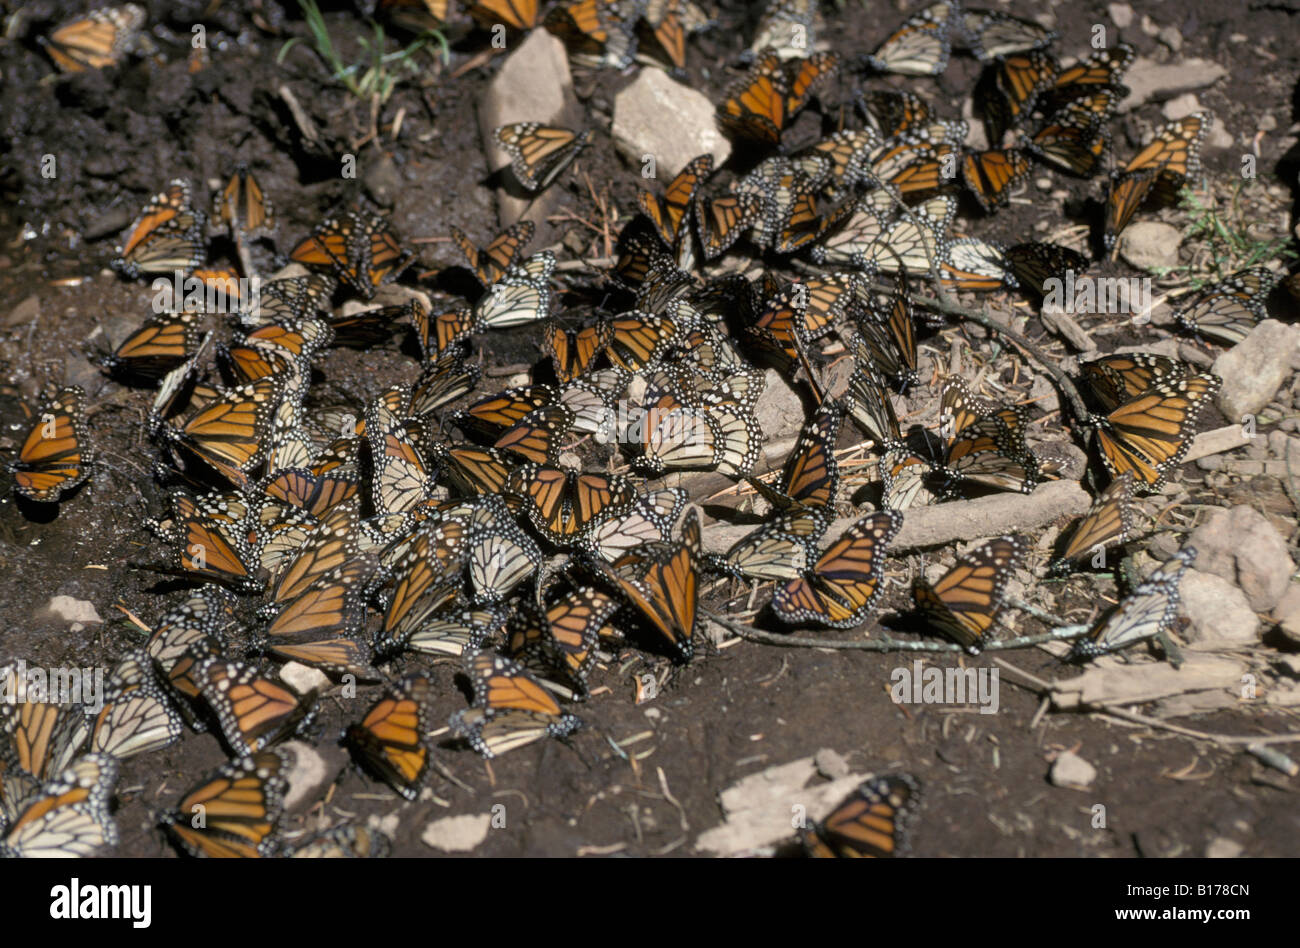 monarques Monarchfalter Monarchs Danaus plexippus on migration animals Arthropoda arthropods Edelfalter Gliederfuesser Stock Photo